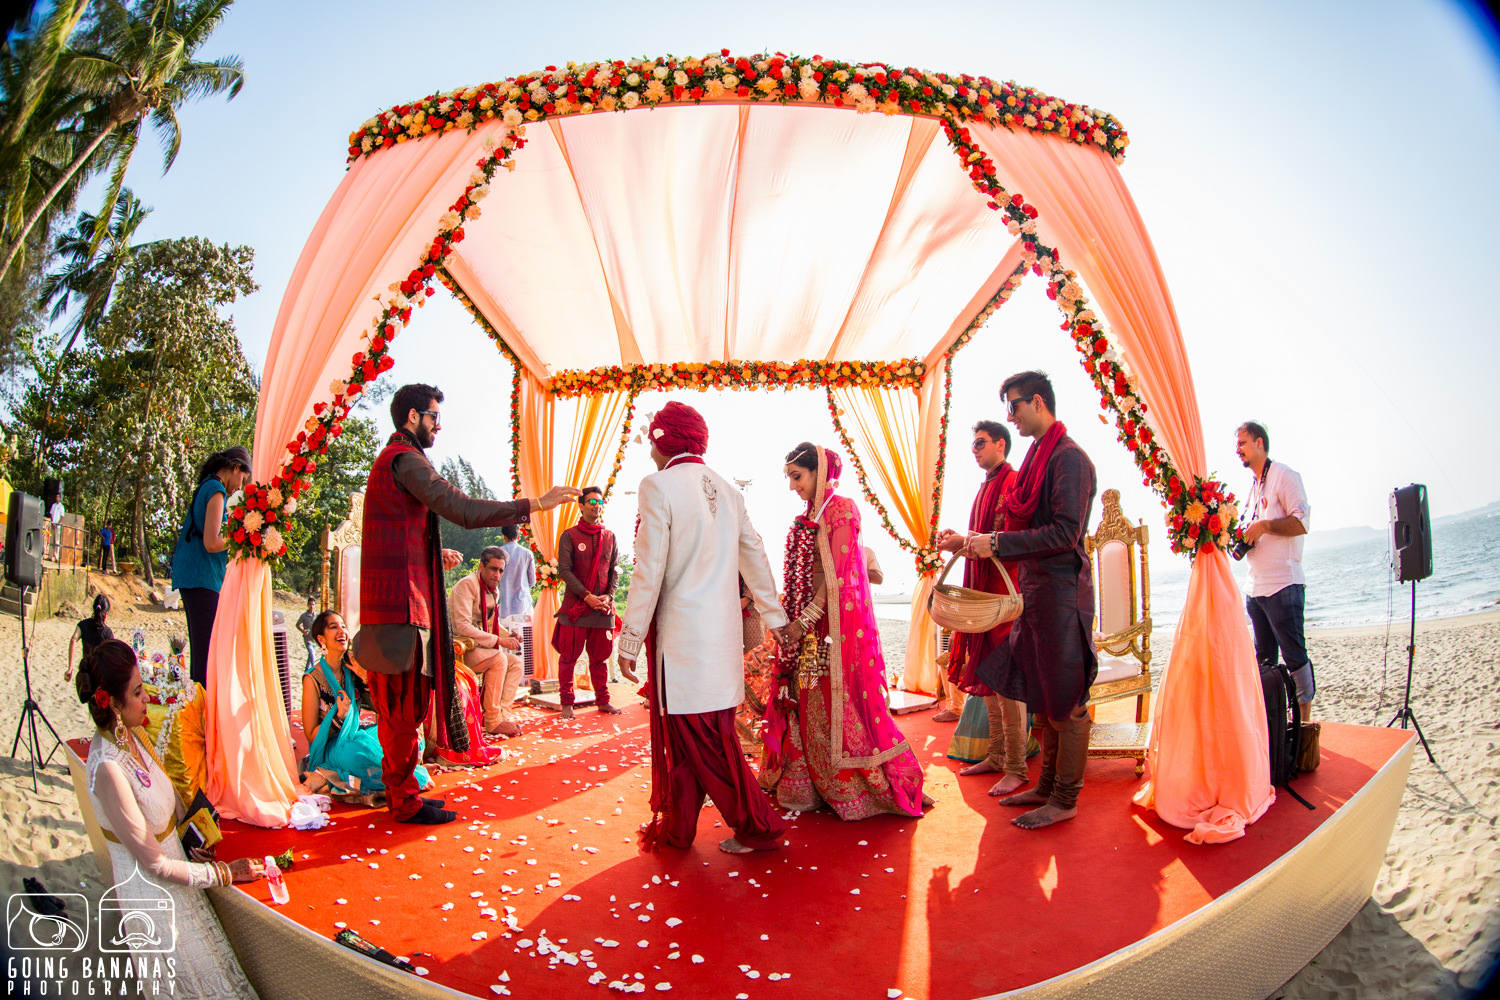 the goa wedding!:manyavar, going bananas photography, makeovers by sukanya, design tuk tuk